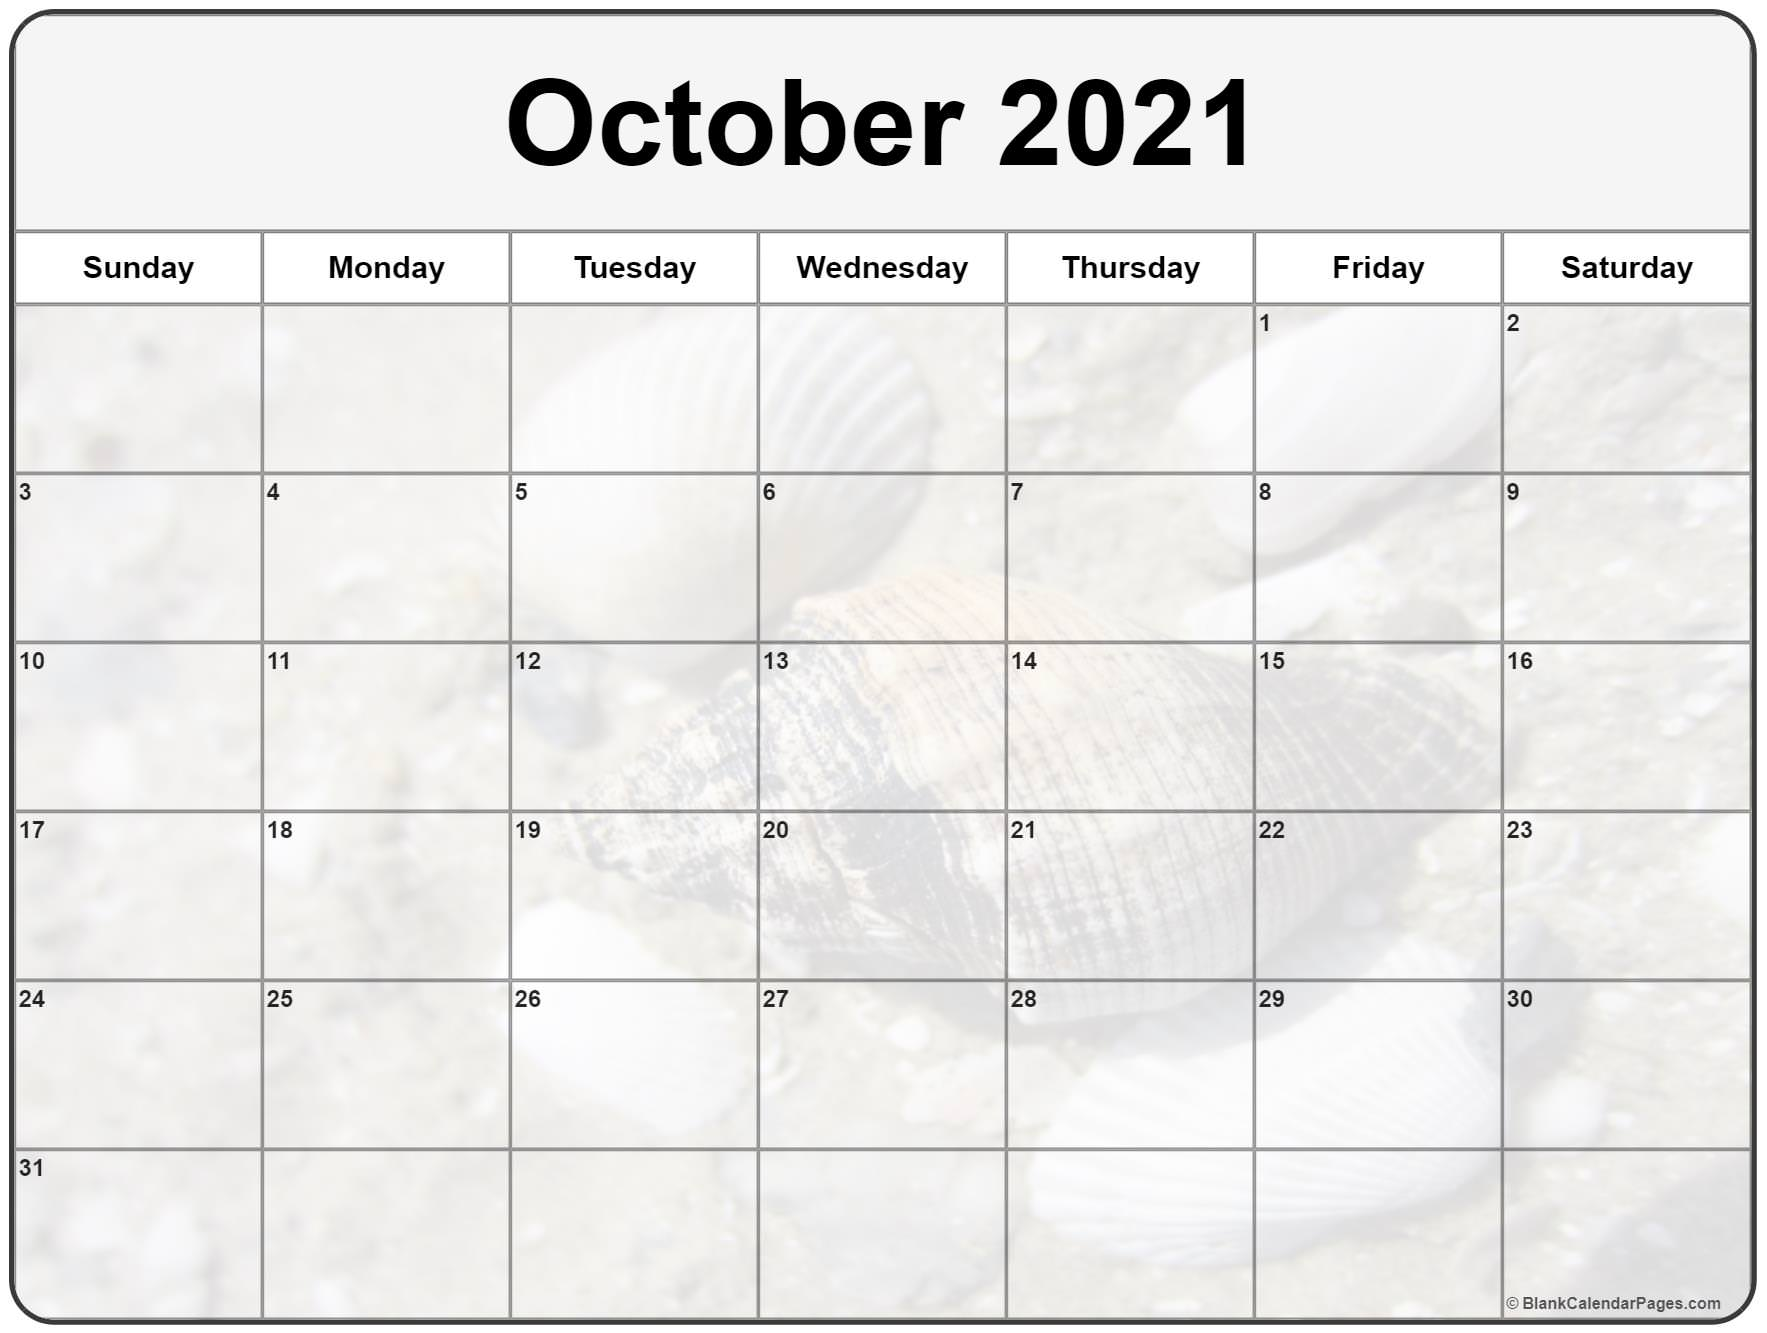 October 2021 image calendar  with cute seashells filters